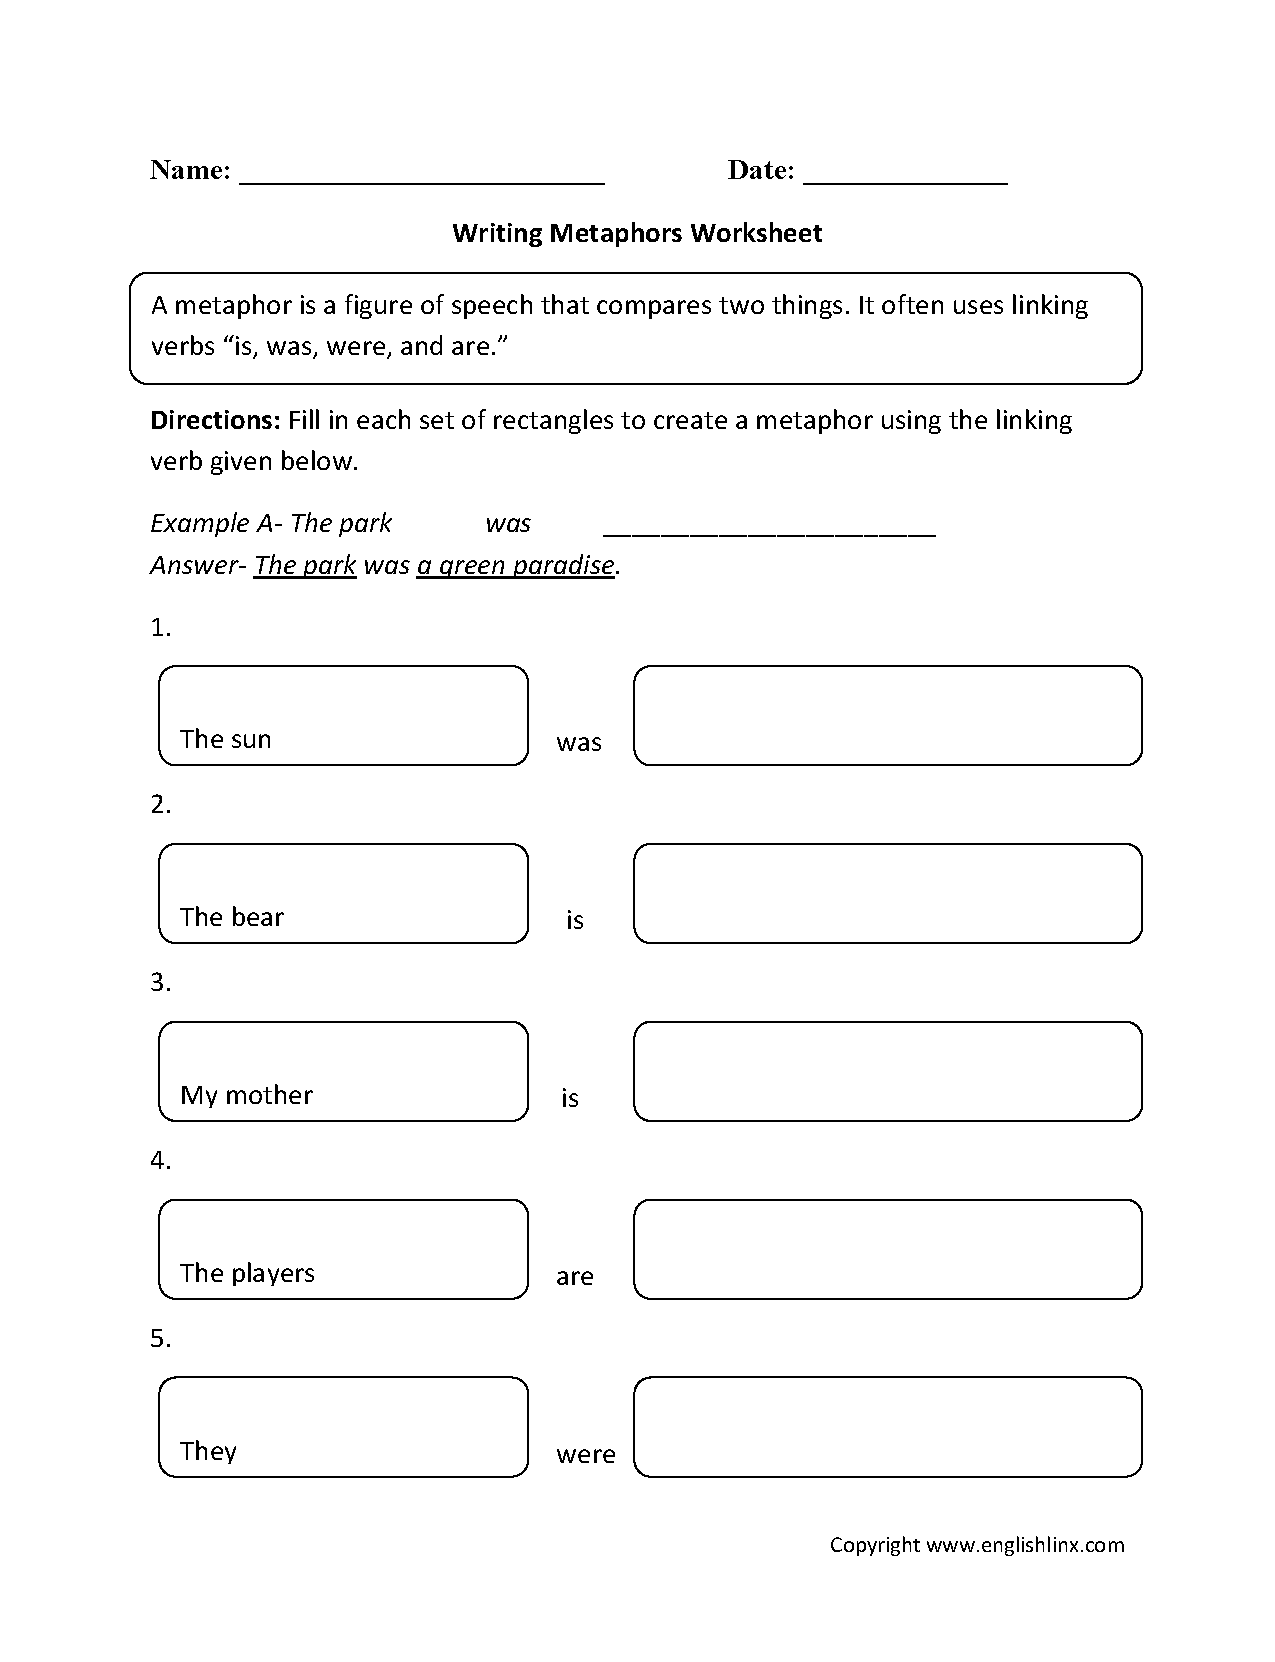 Aldiablosus  Ravishing Englishlinxcom  Metaphors Worksheets With Handsome Worksheet With Lovely Distributive Property And Combining Like Terms Worksheets Also Rhombus Worksheets In Addition Life Cycle Of Frog Worksheet And Addition And Subtraction To  Worksheets As Well As Noun Worksheets Grade  Additionally Free Printable Contraction Worksheets From Englishlinxcom With Aldiablosus  Handsome Englishlinxcom  Metaphors Worksheets With Lovely Worksheet And Ravishing Distributive Property And Combining Like Terms Worksheets Also Rhombus Worksheets In Addition Life Cycle Of Frog Worksheet From Englishlinxcom